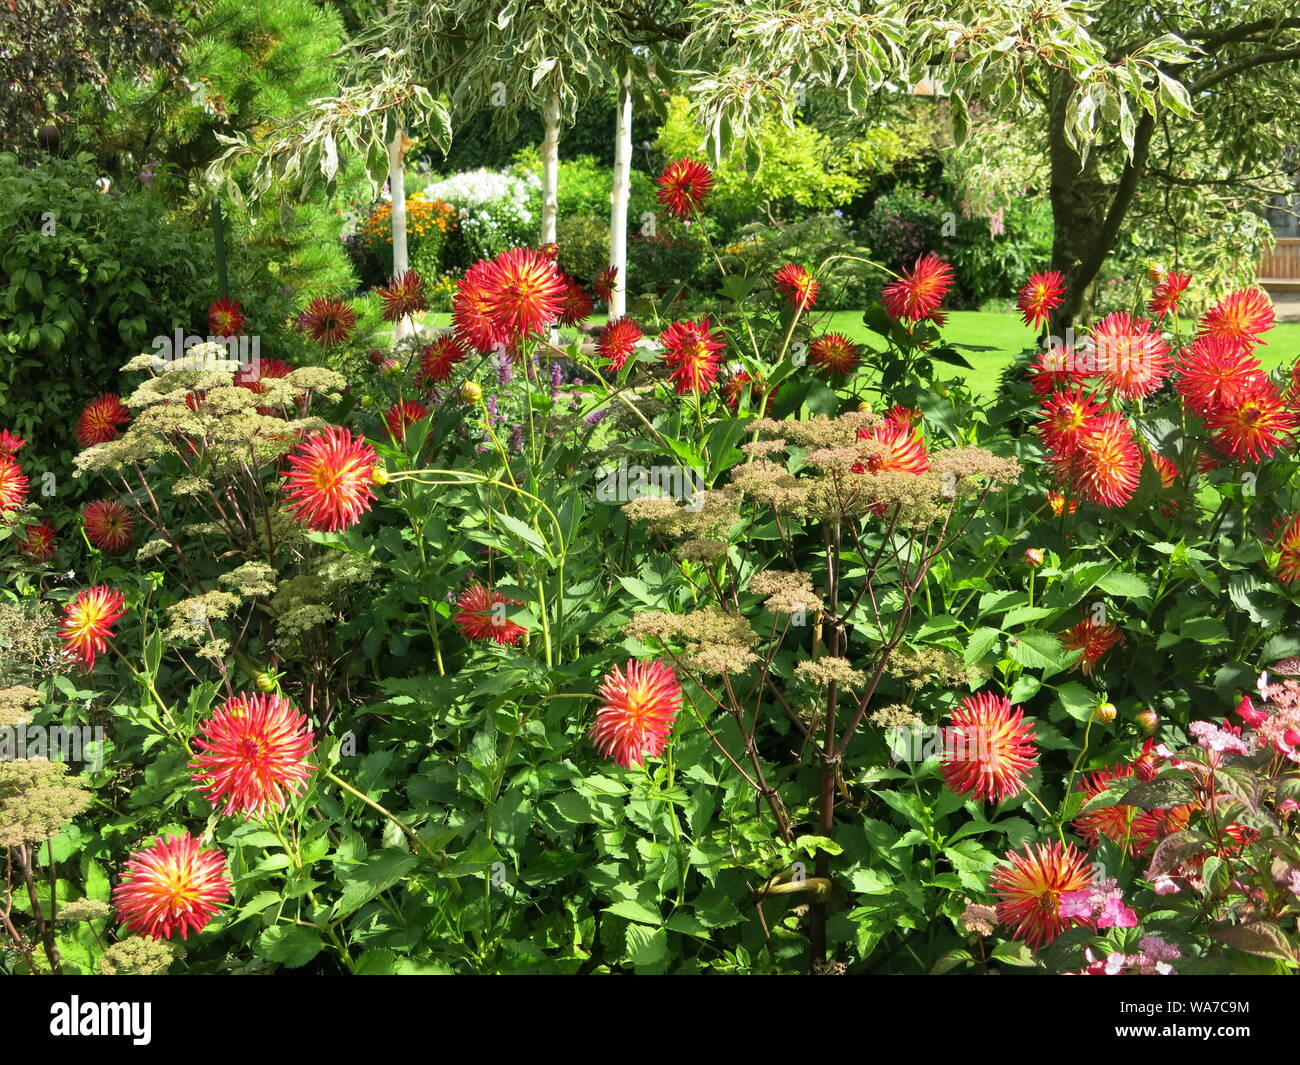 The dahlias make a splash of colour in a border at John's Garden at Ashwood Nurseries, which had a charity Open Day for the public in August 2019. Stock Photo